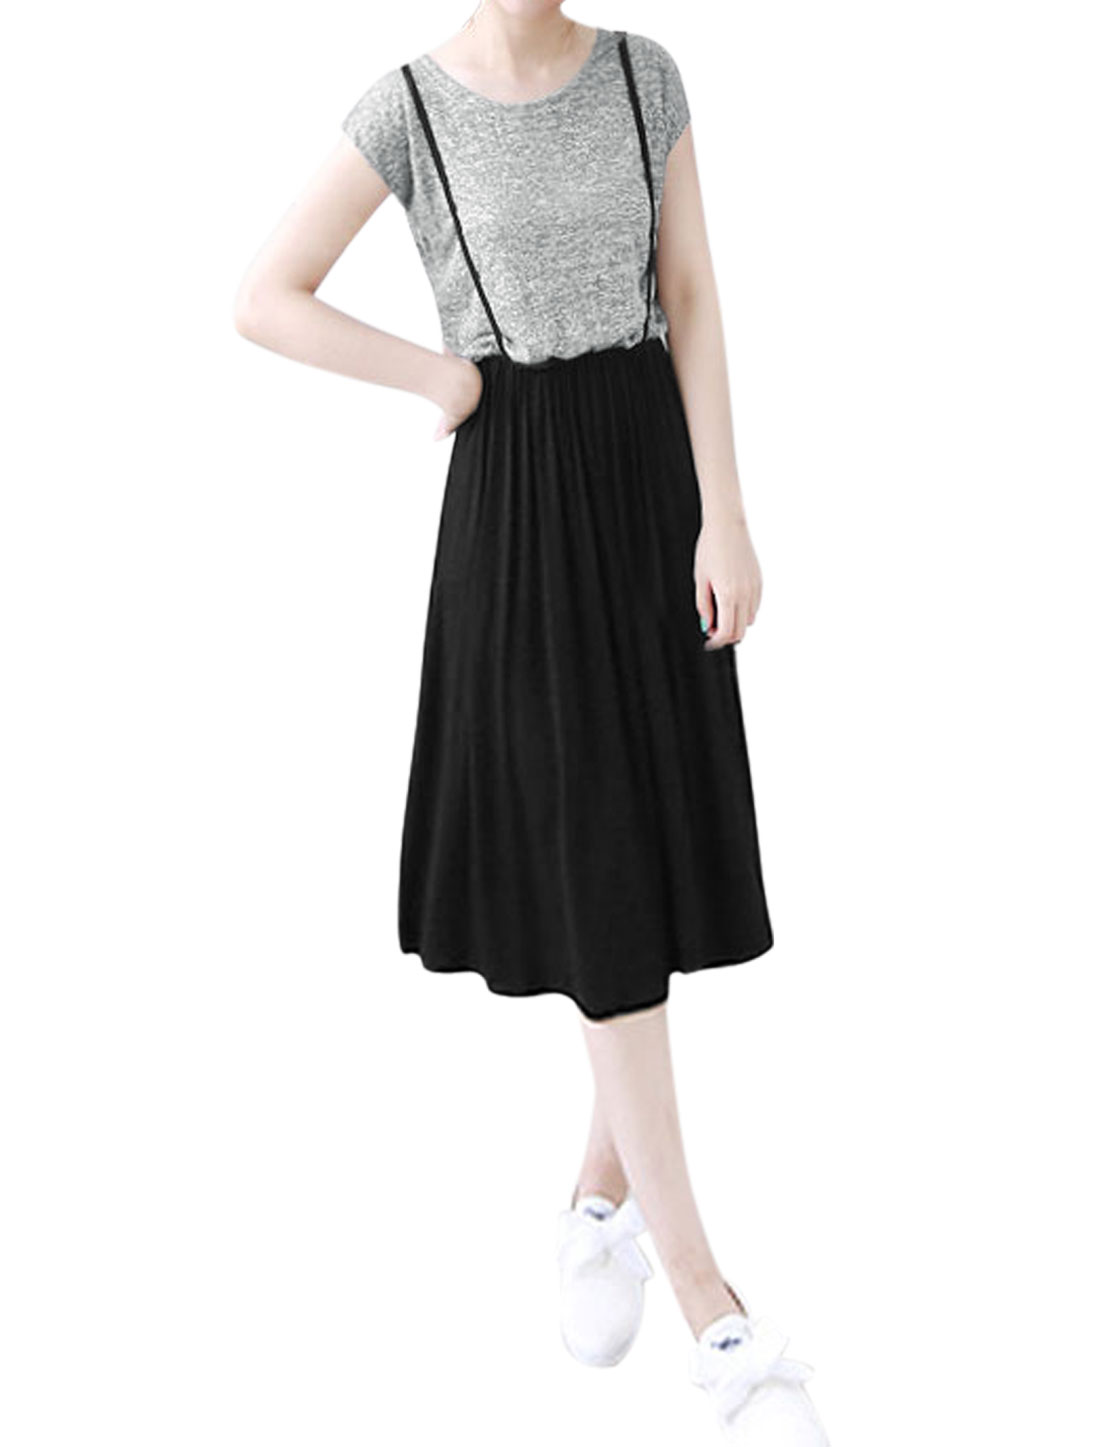 Woman Contrast Color Layered Top Round Neck Panel A Line Dress Light Gray Black M